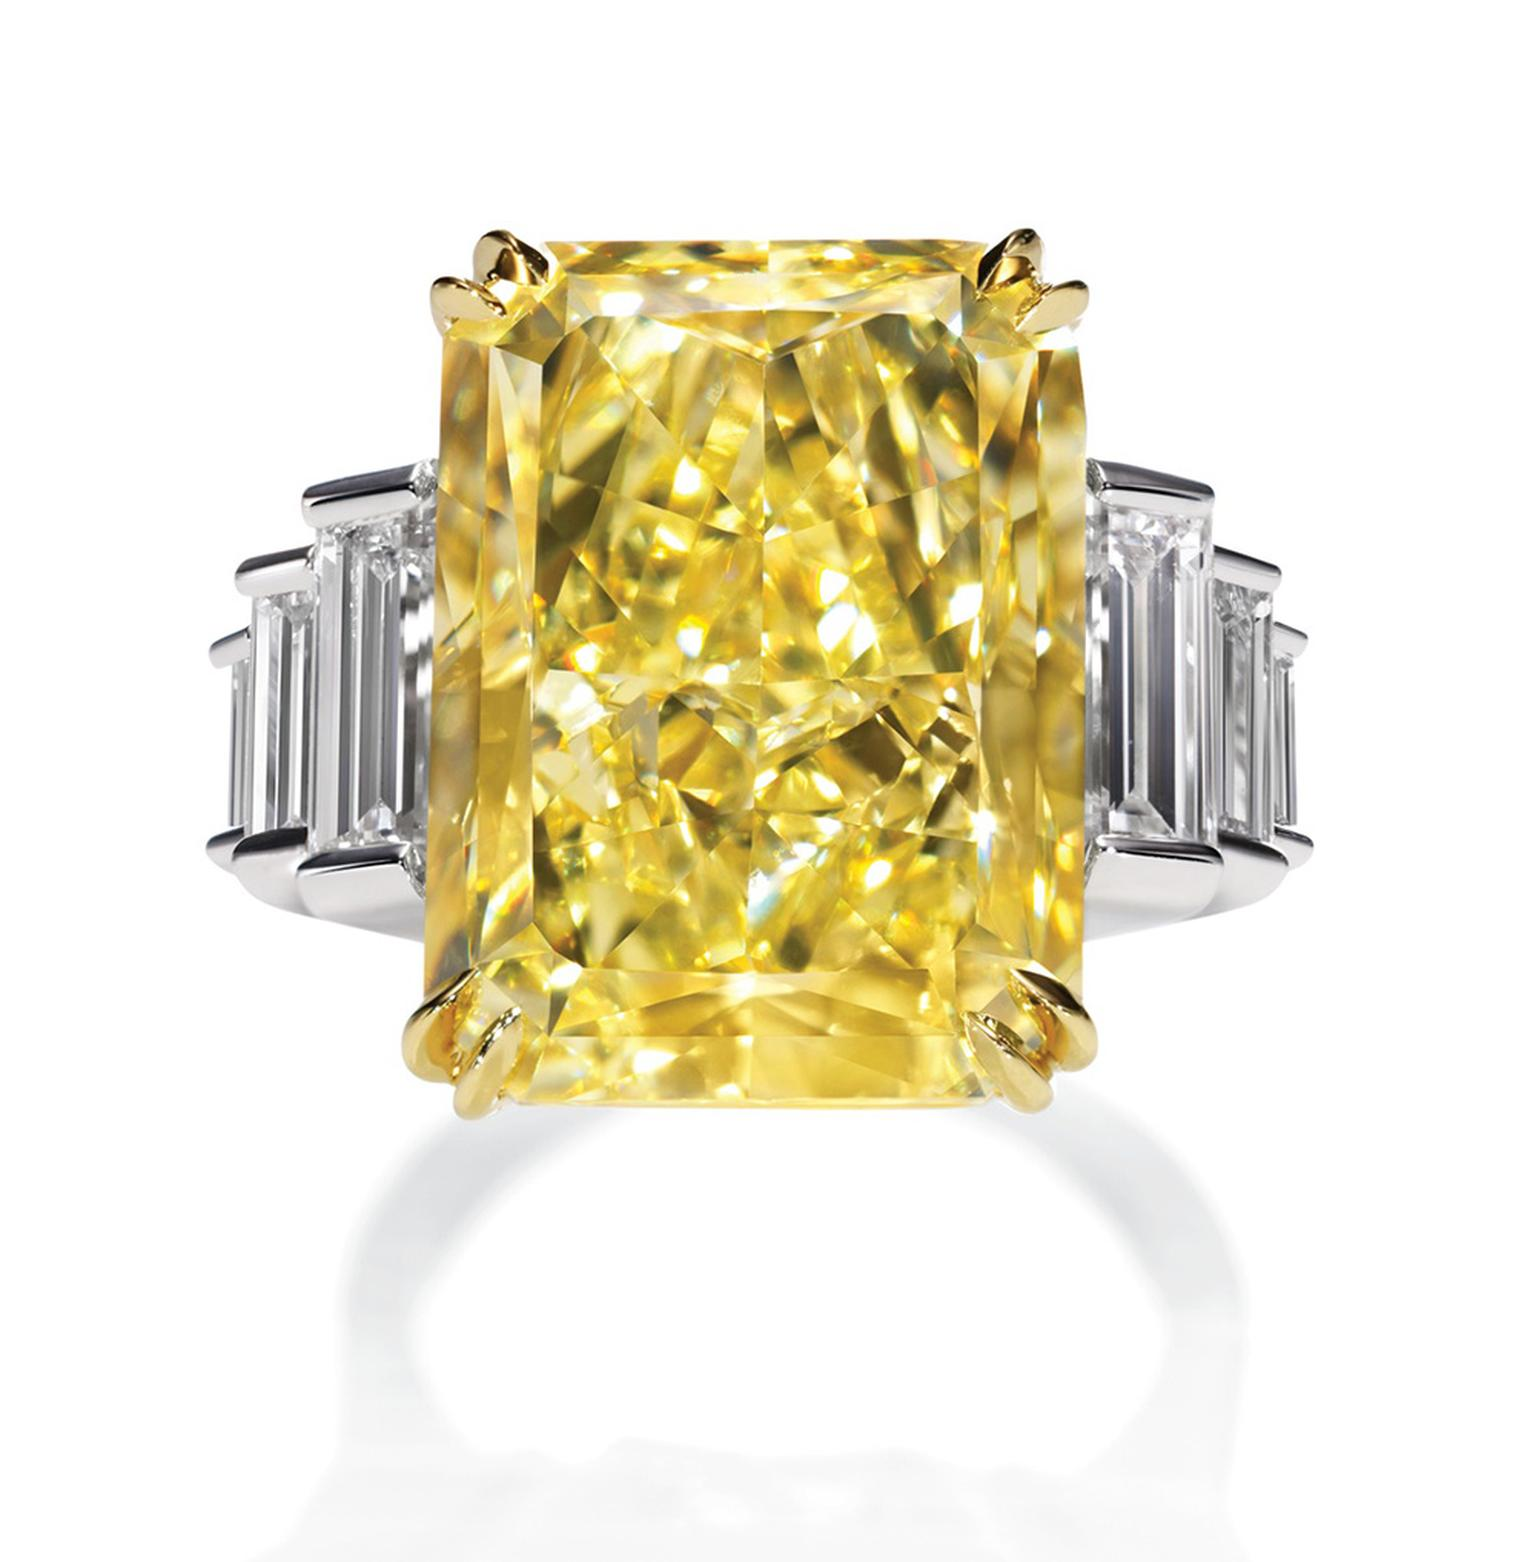 Harry Winston Incredible Radiant-cut Yellow Diamond ring in 18ct yellow gold with platinum (POA)